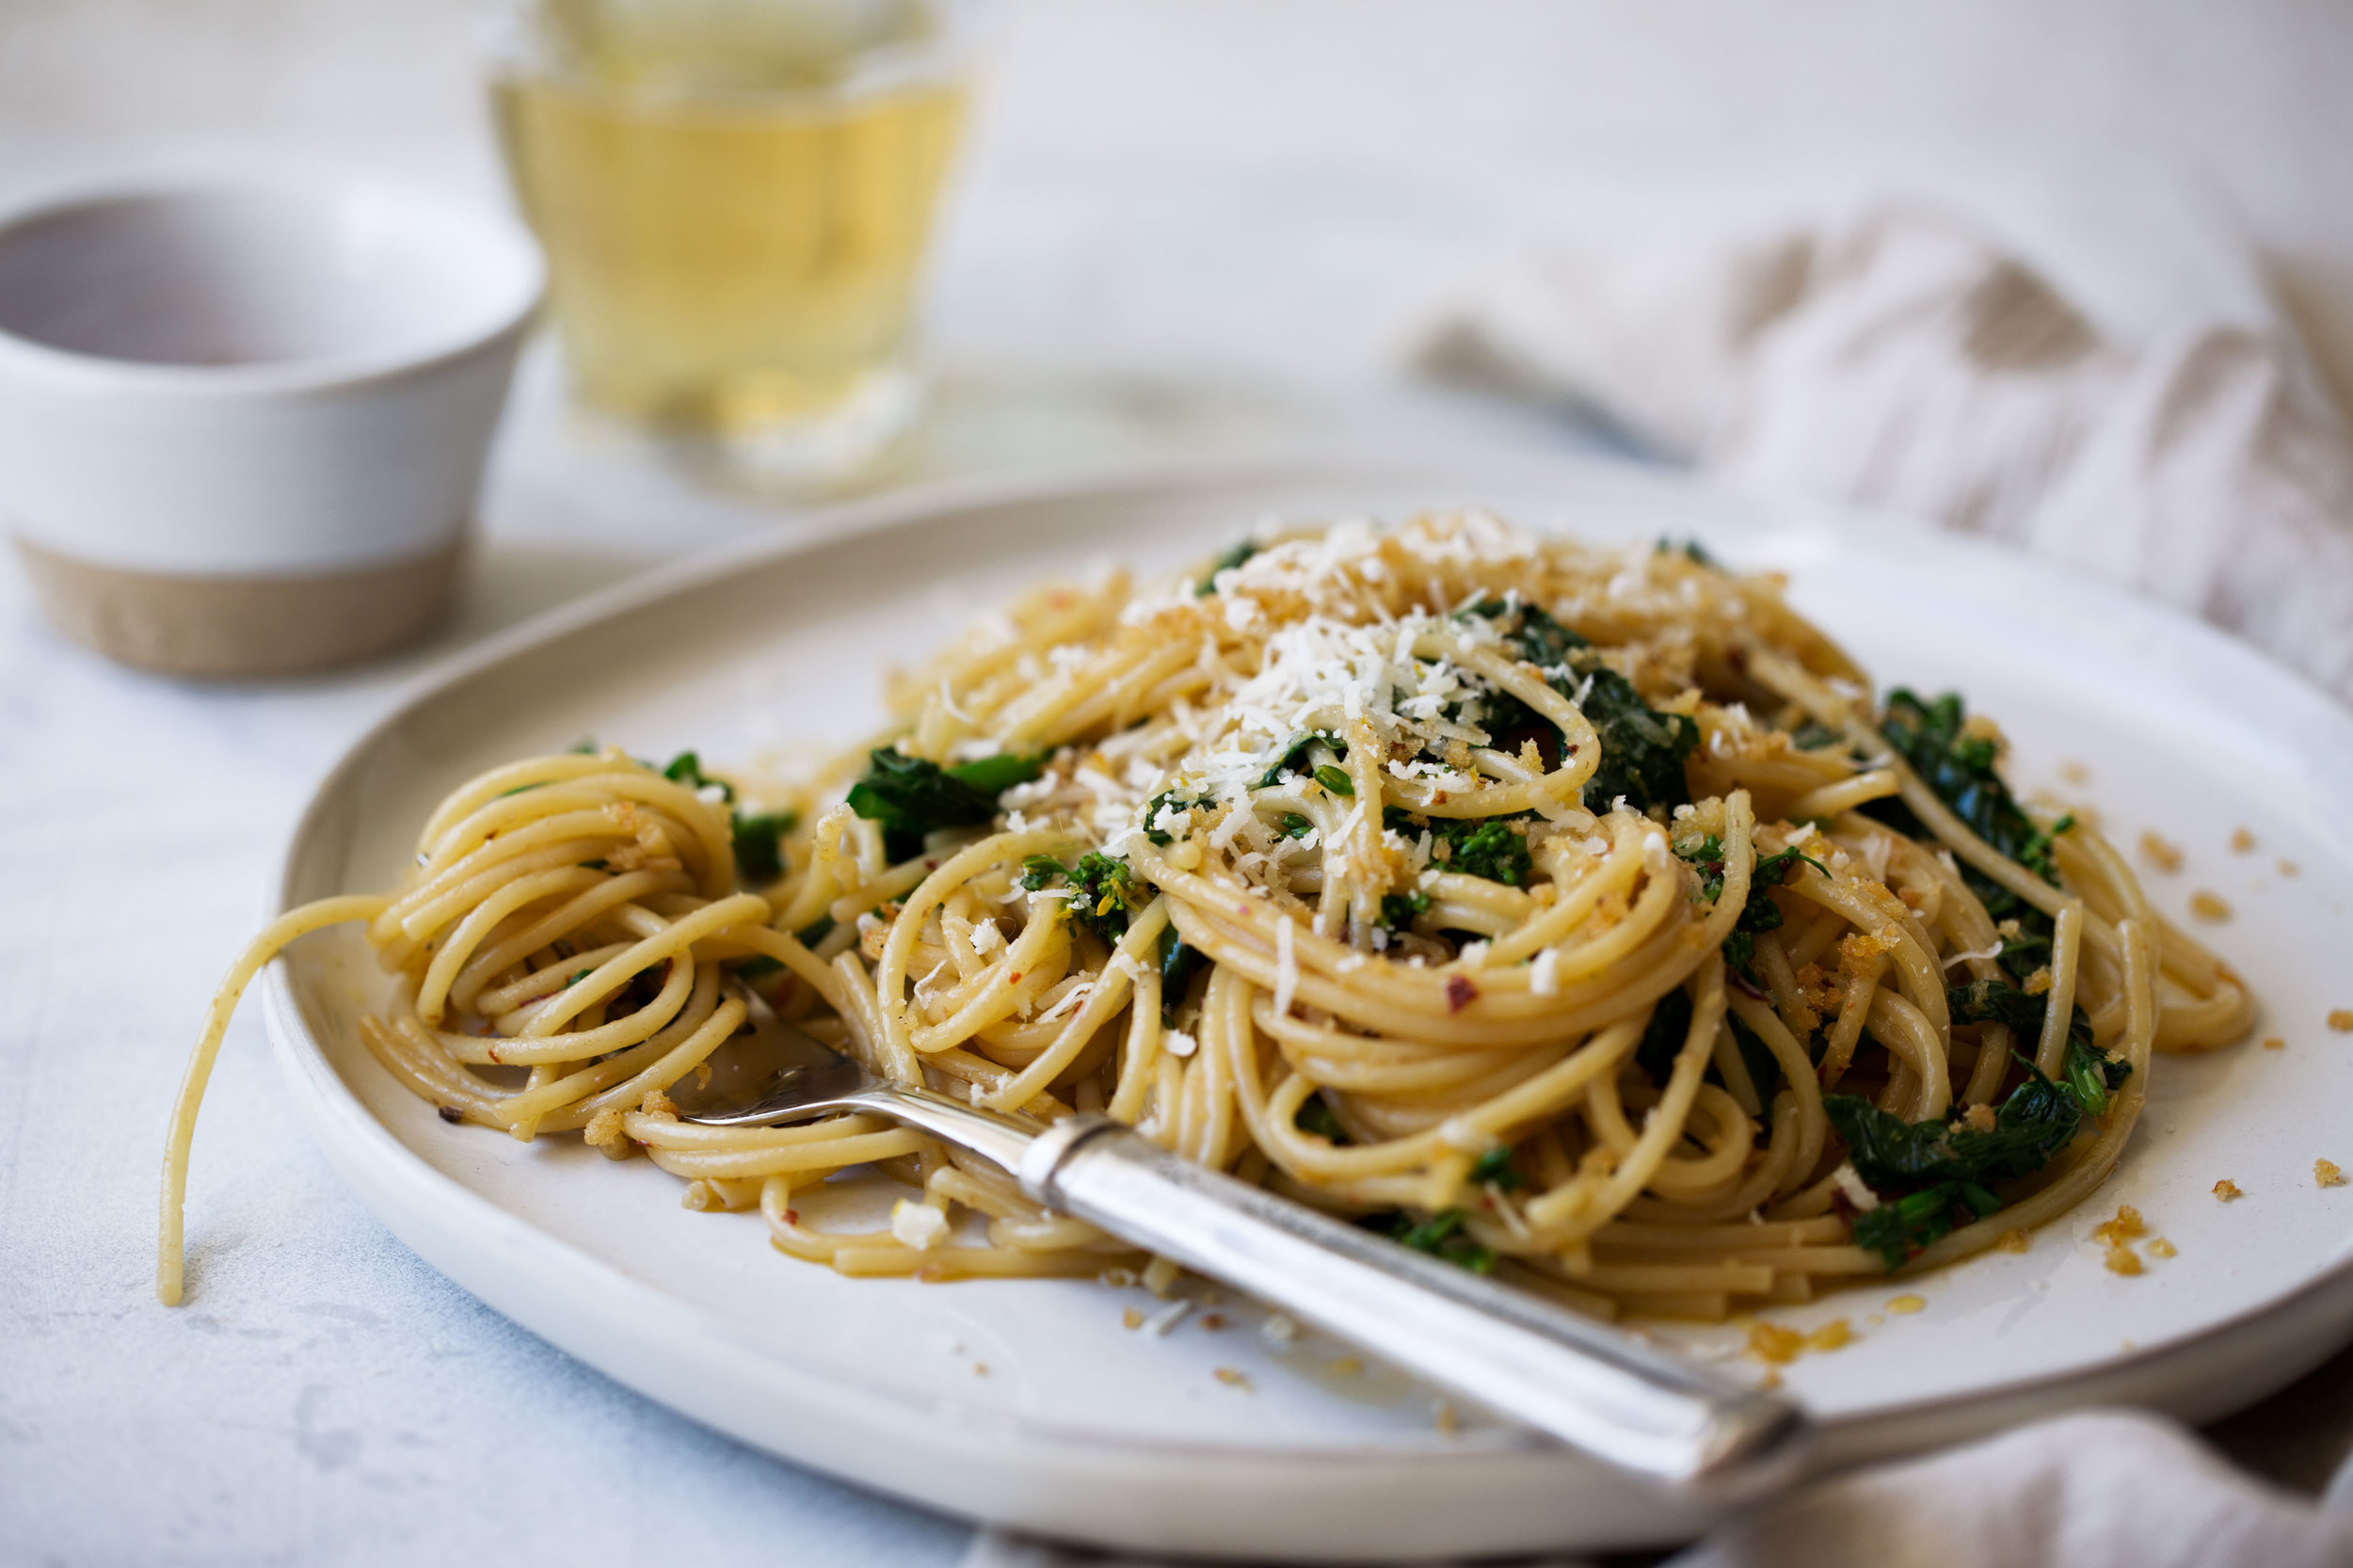 spaghetti with rapini, anchovy and chili oil topped with lemon breadcrumbs recipe from cooking with cocktail rings